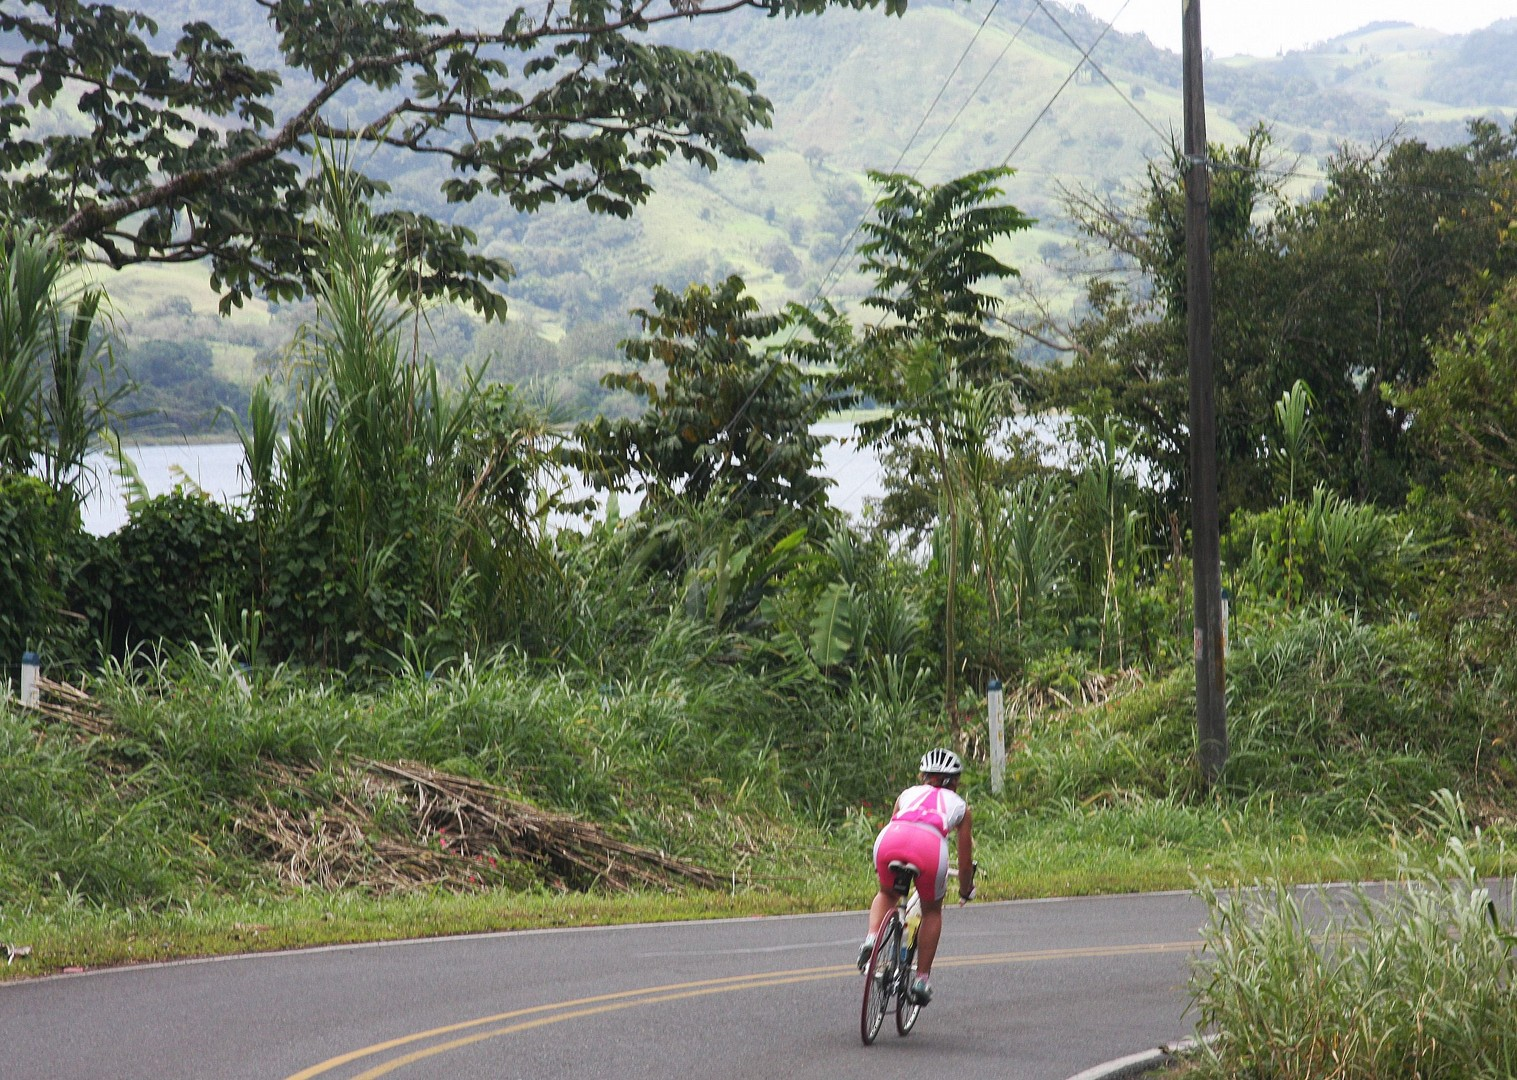 ruta-de-los-volcanes-costa-rica-guided-road-cycling-holiday-san-jose.jpg - Costa Rica - Ruta de los Volcanes - Guided Road Cycling Holiday - Road Cycling